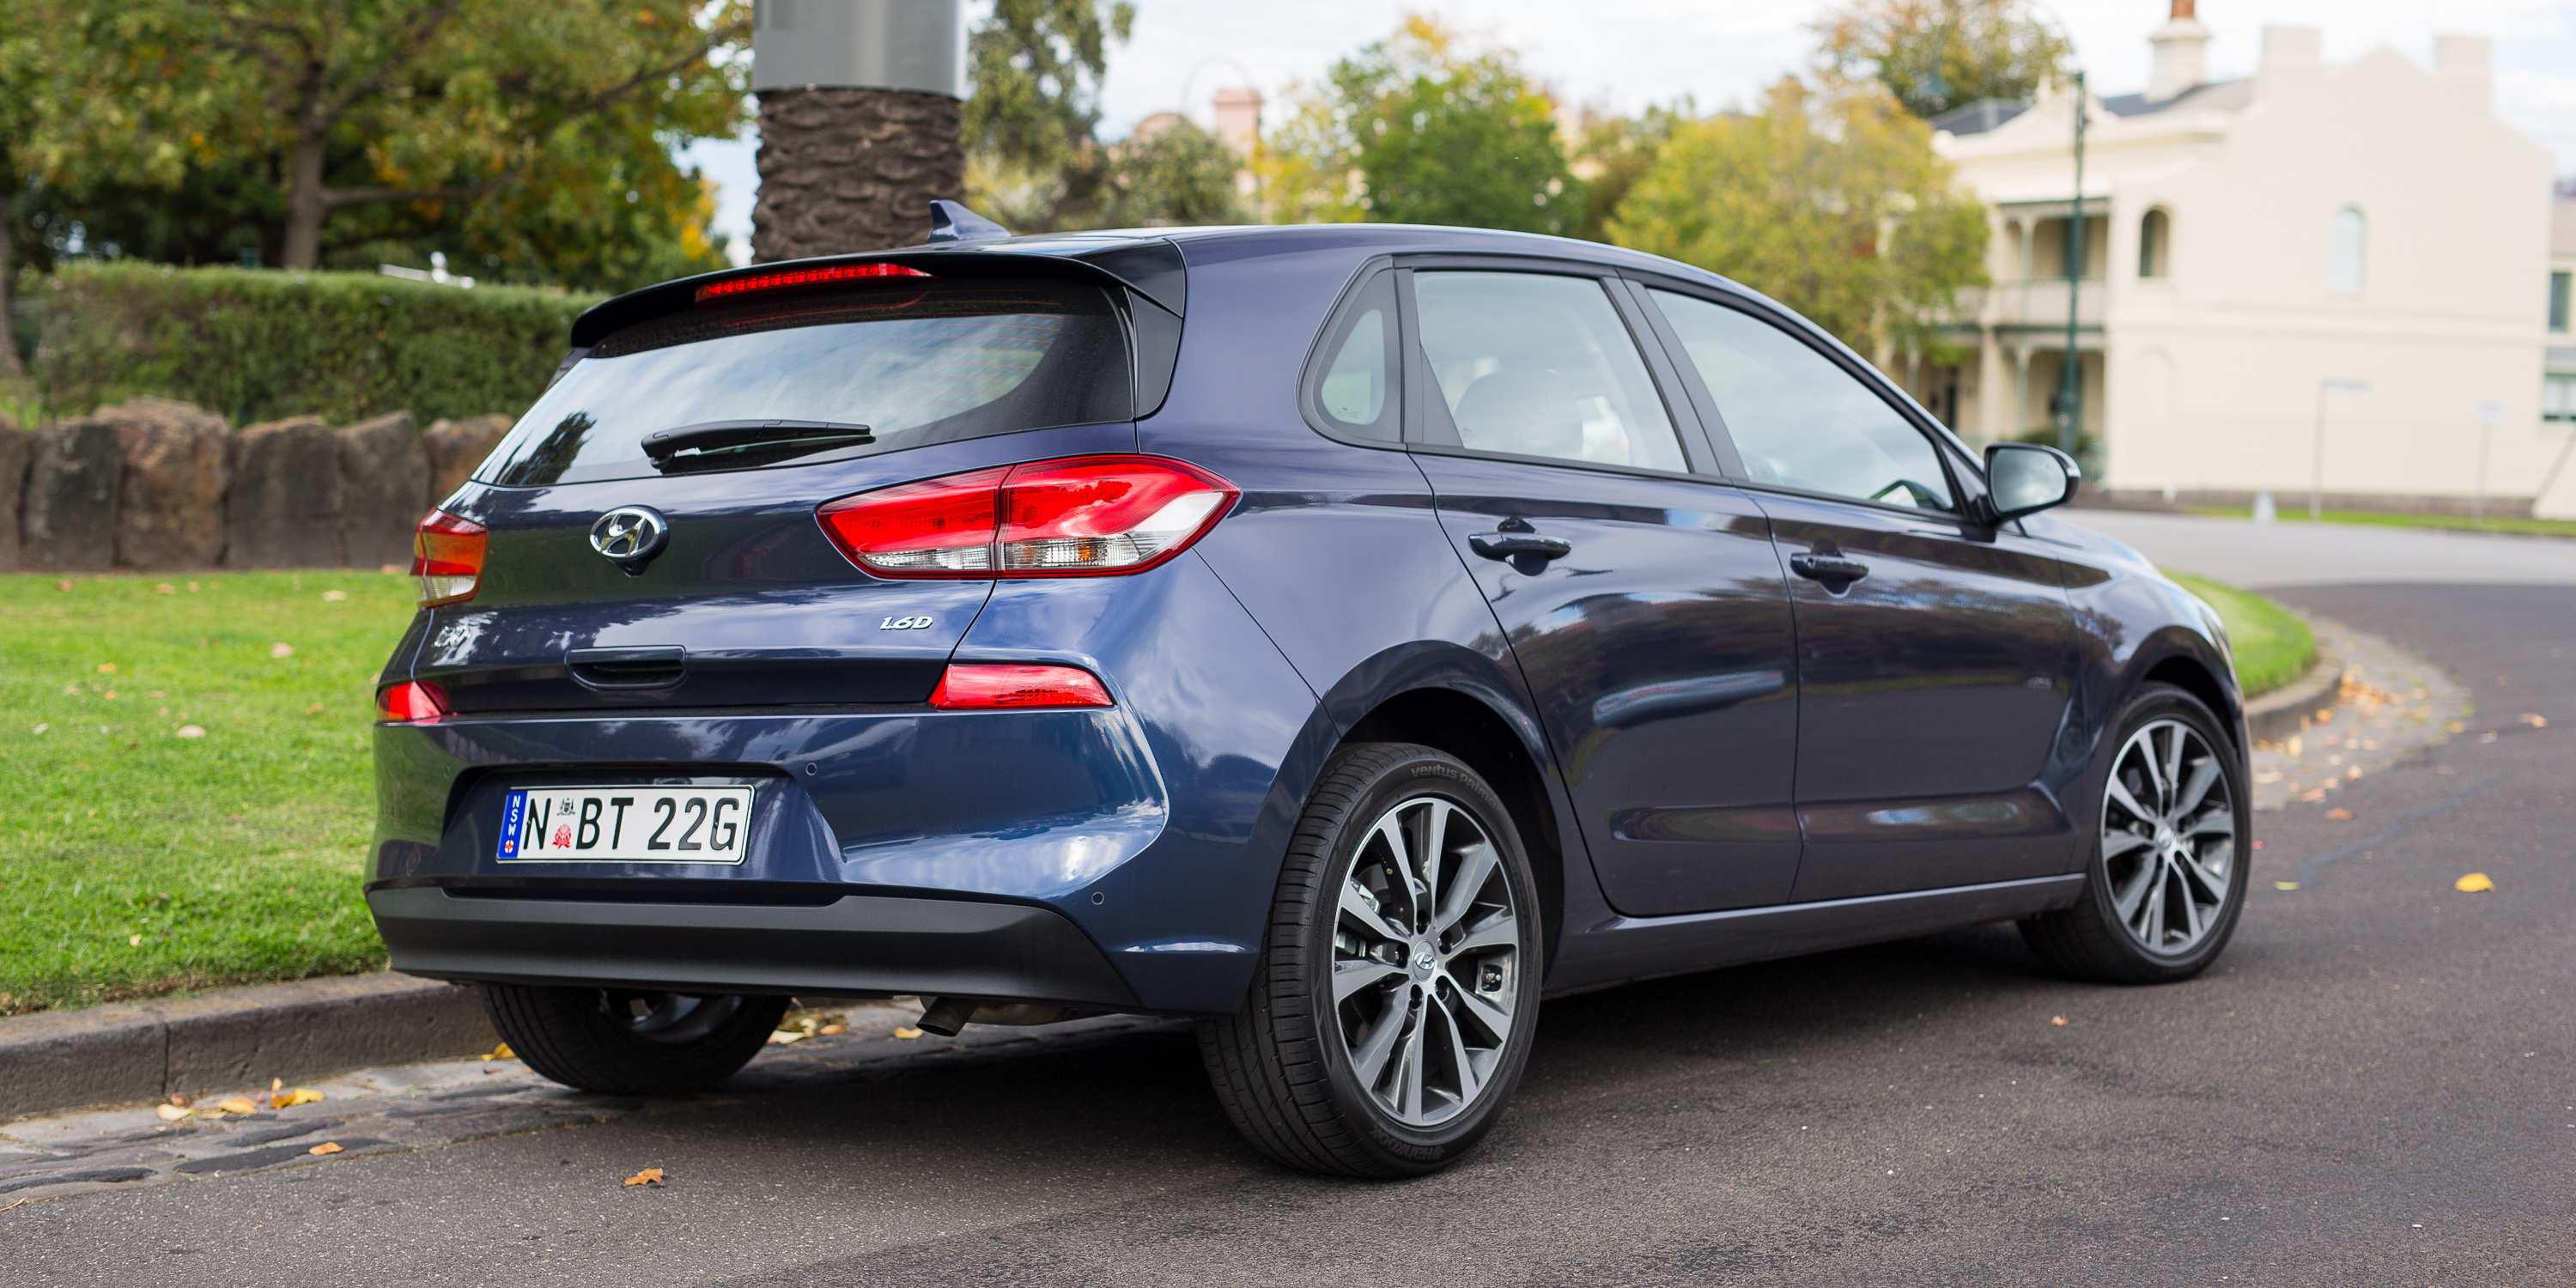 Compare Car Specs >> 2017 Hyundai i30 Elite review - photos | CarAdvice